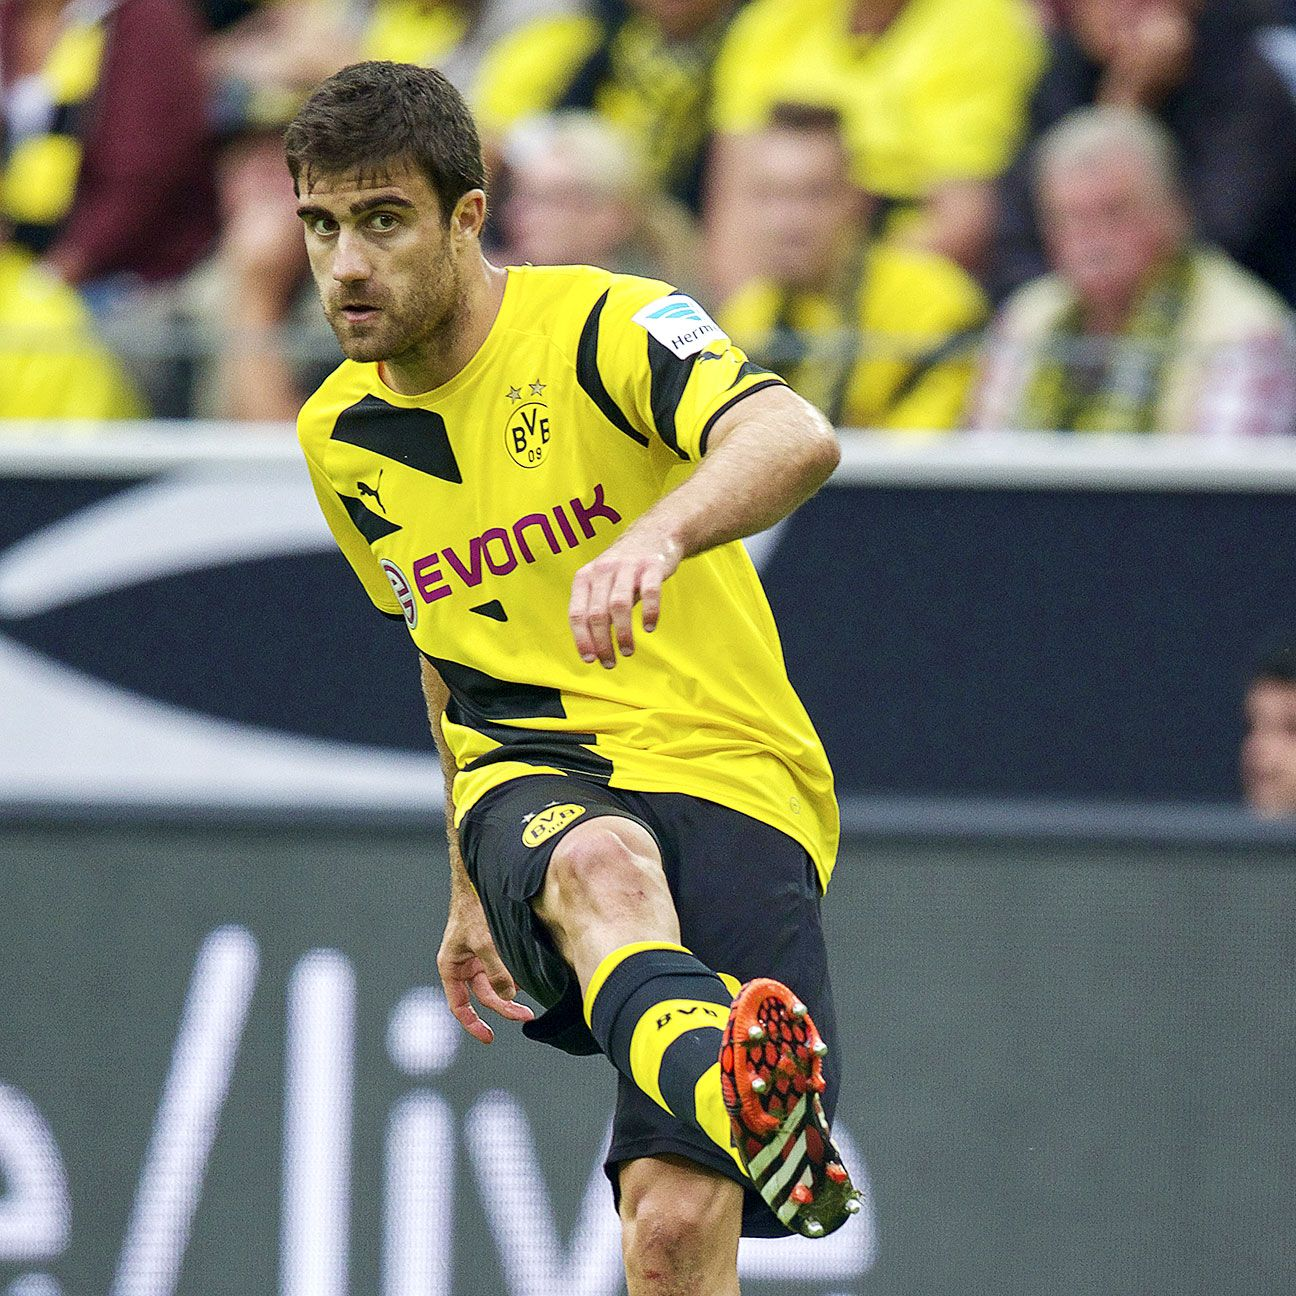 Dortmund's Sokratis Papastathopoulos could end up facing his current teammates in the Champions League should he complete a move to Arsenal.